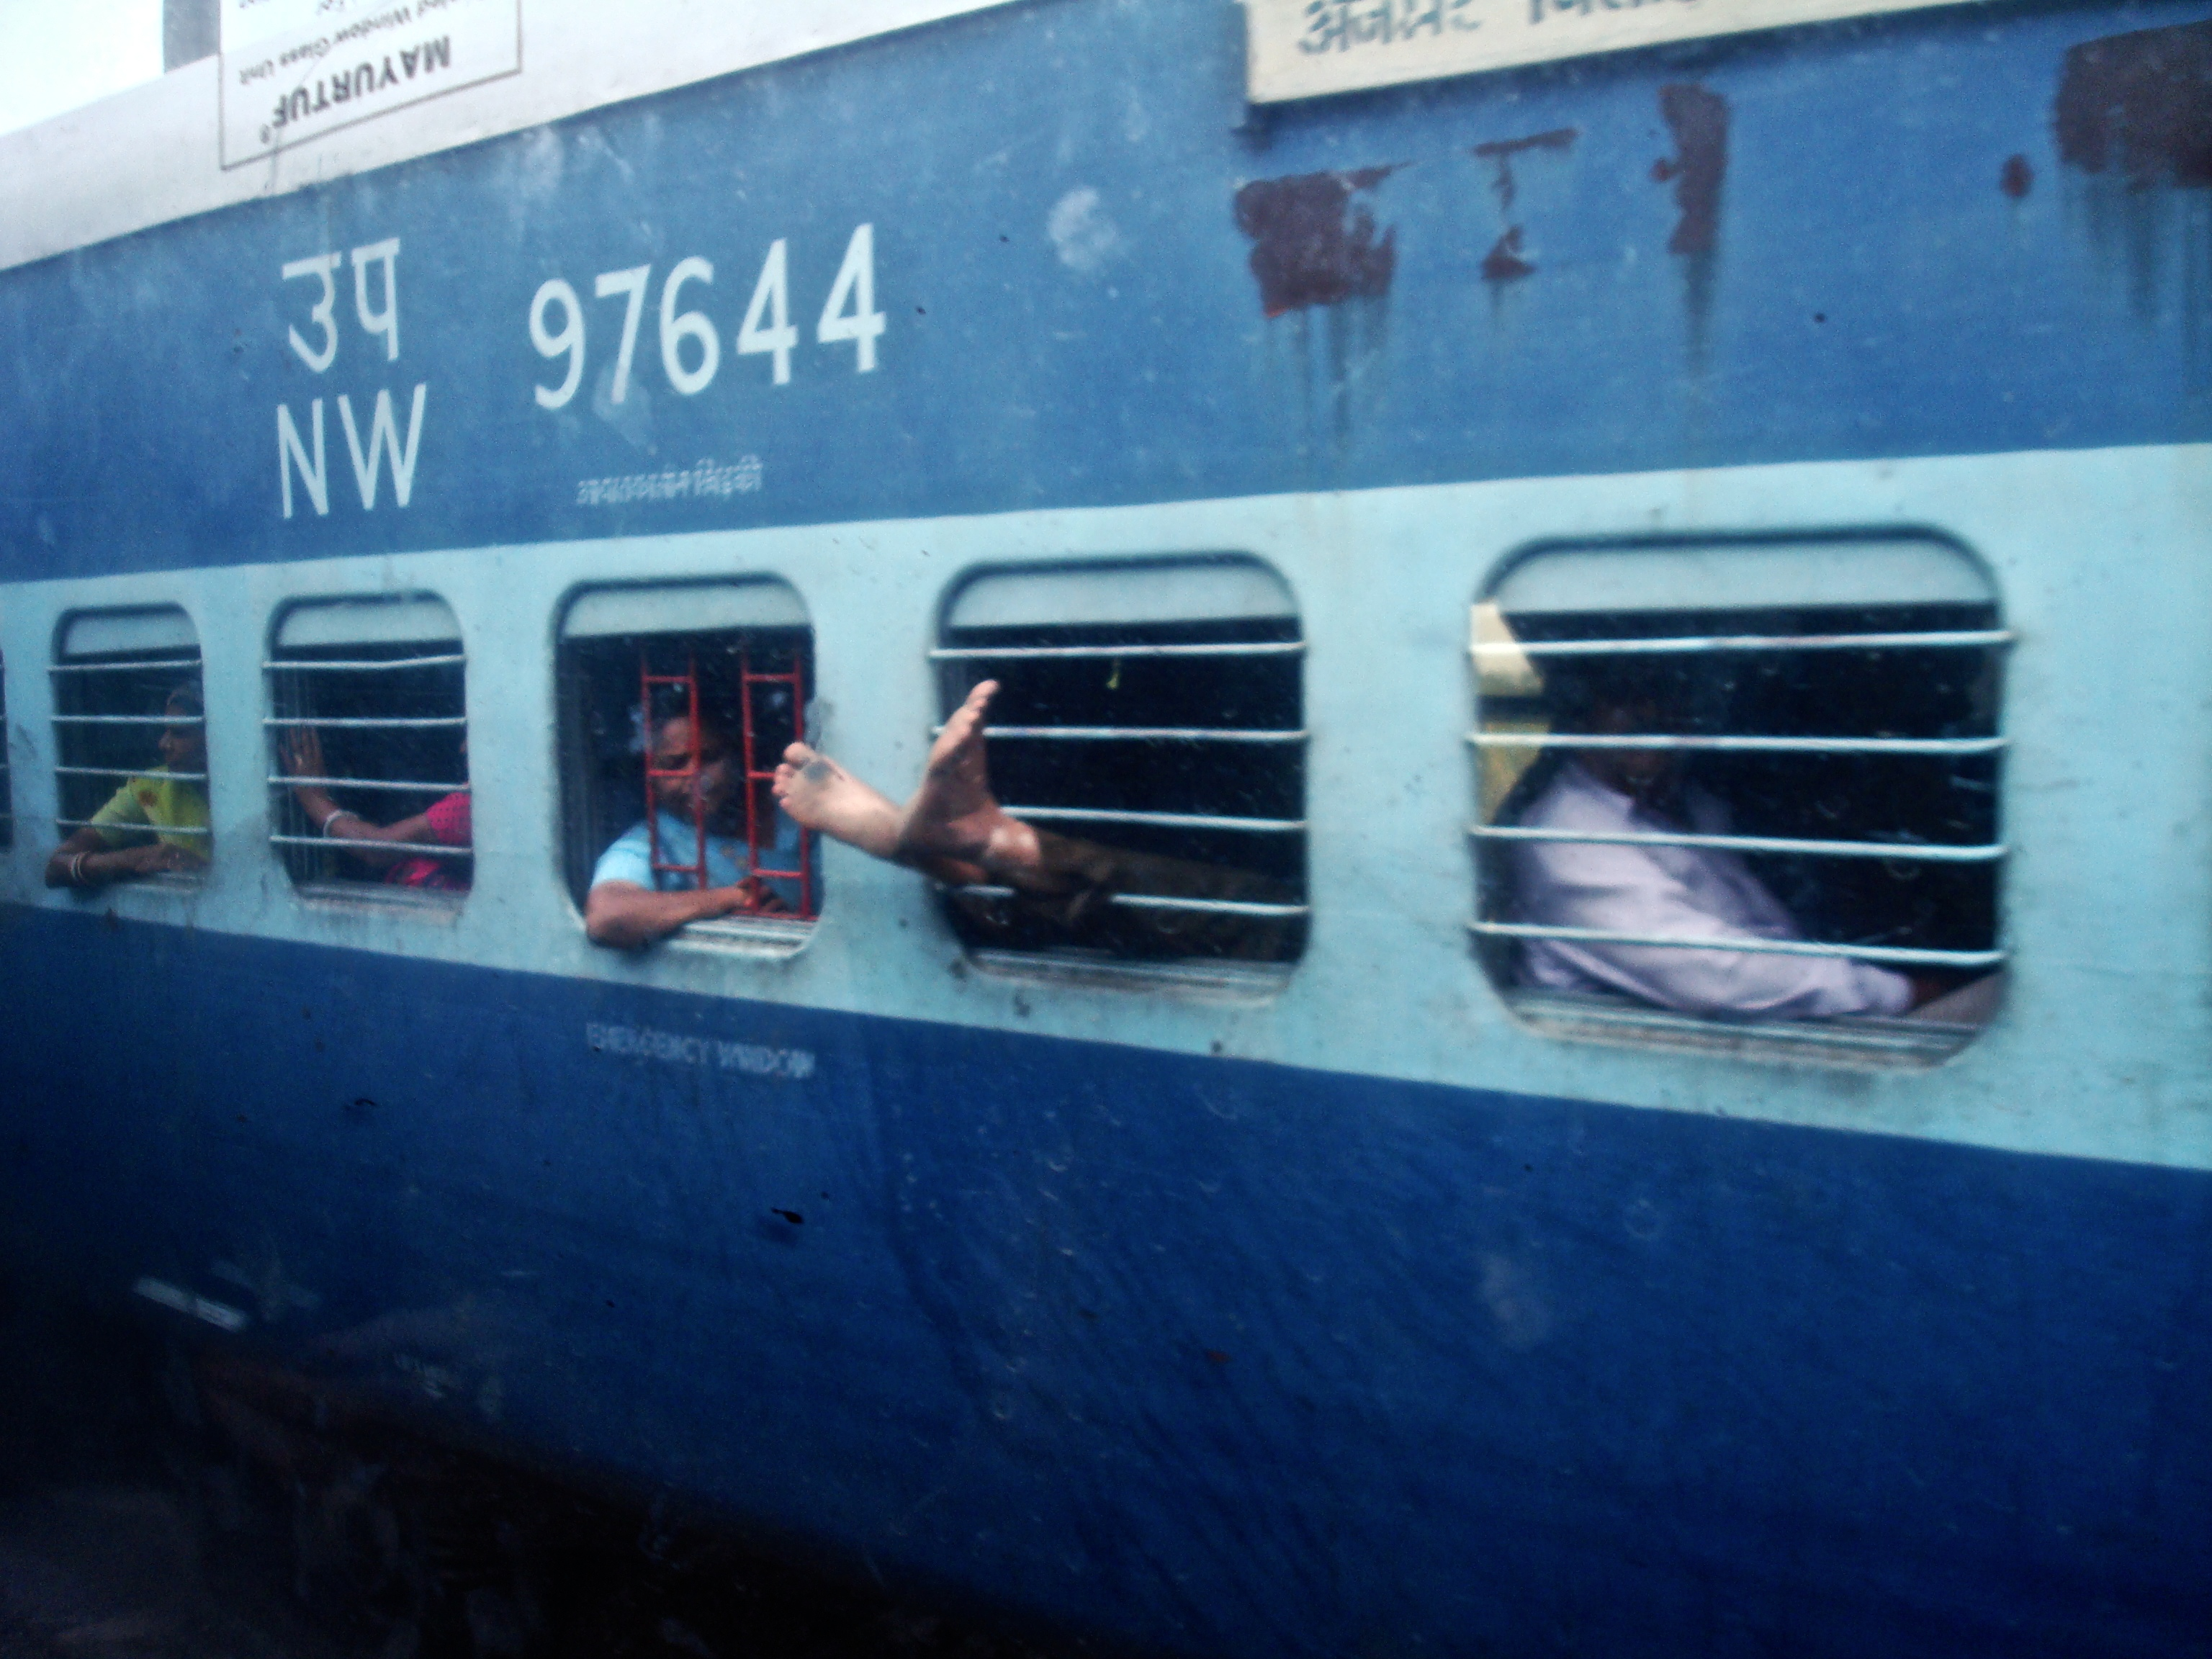 All Aboard! The Indian Railway